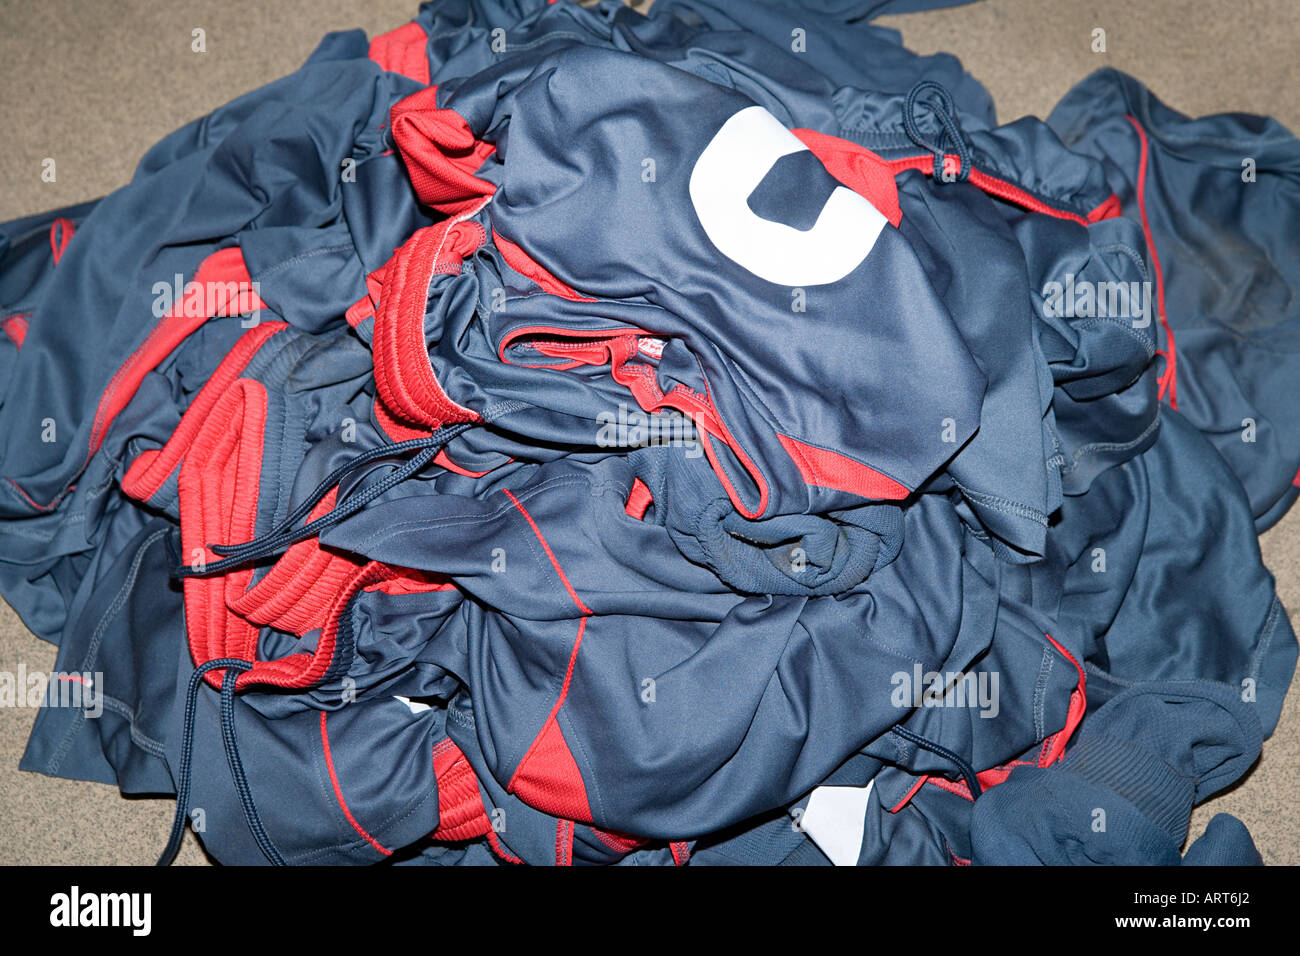 Pile of football uniforms - Stock Image